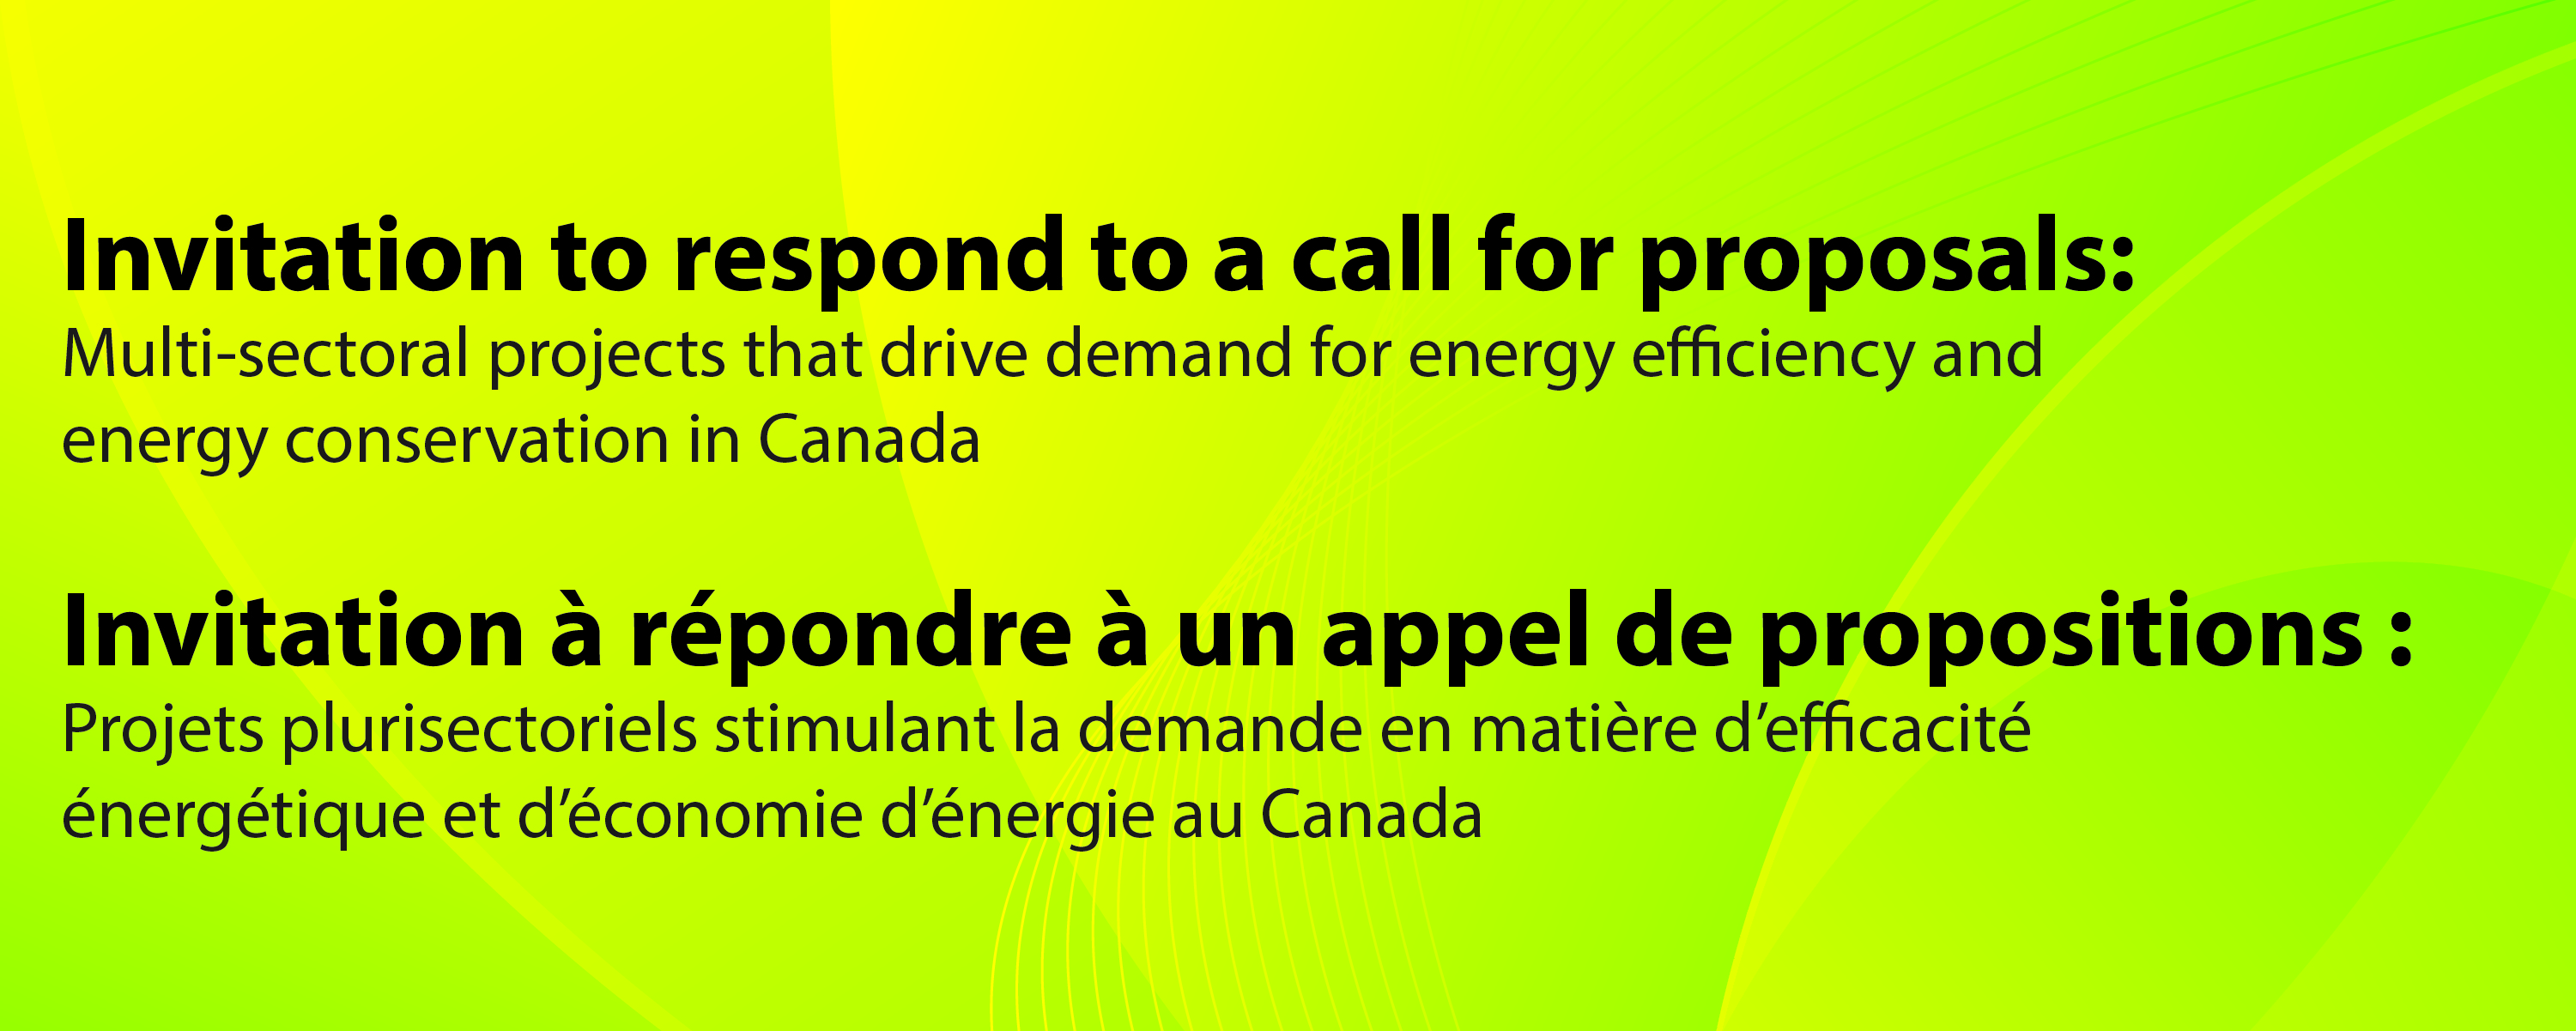 Link to the Invitation to Respond to a Call for Proposals: Multi-sectoral projects that drive demand for energy efficiency and energy conservation in Canada